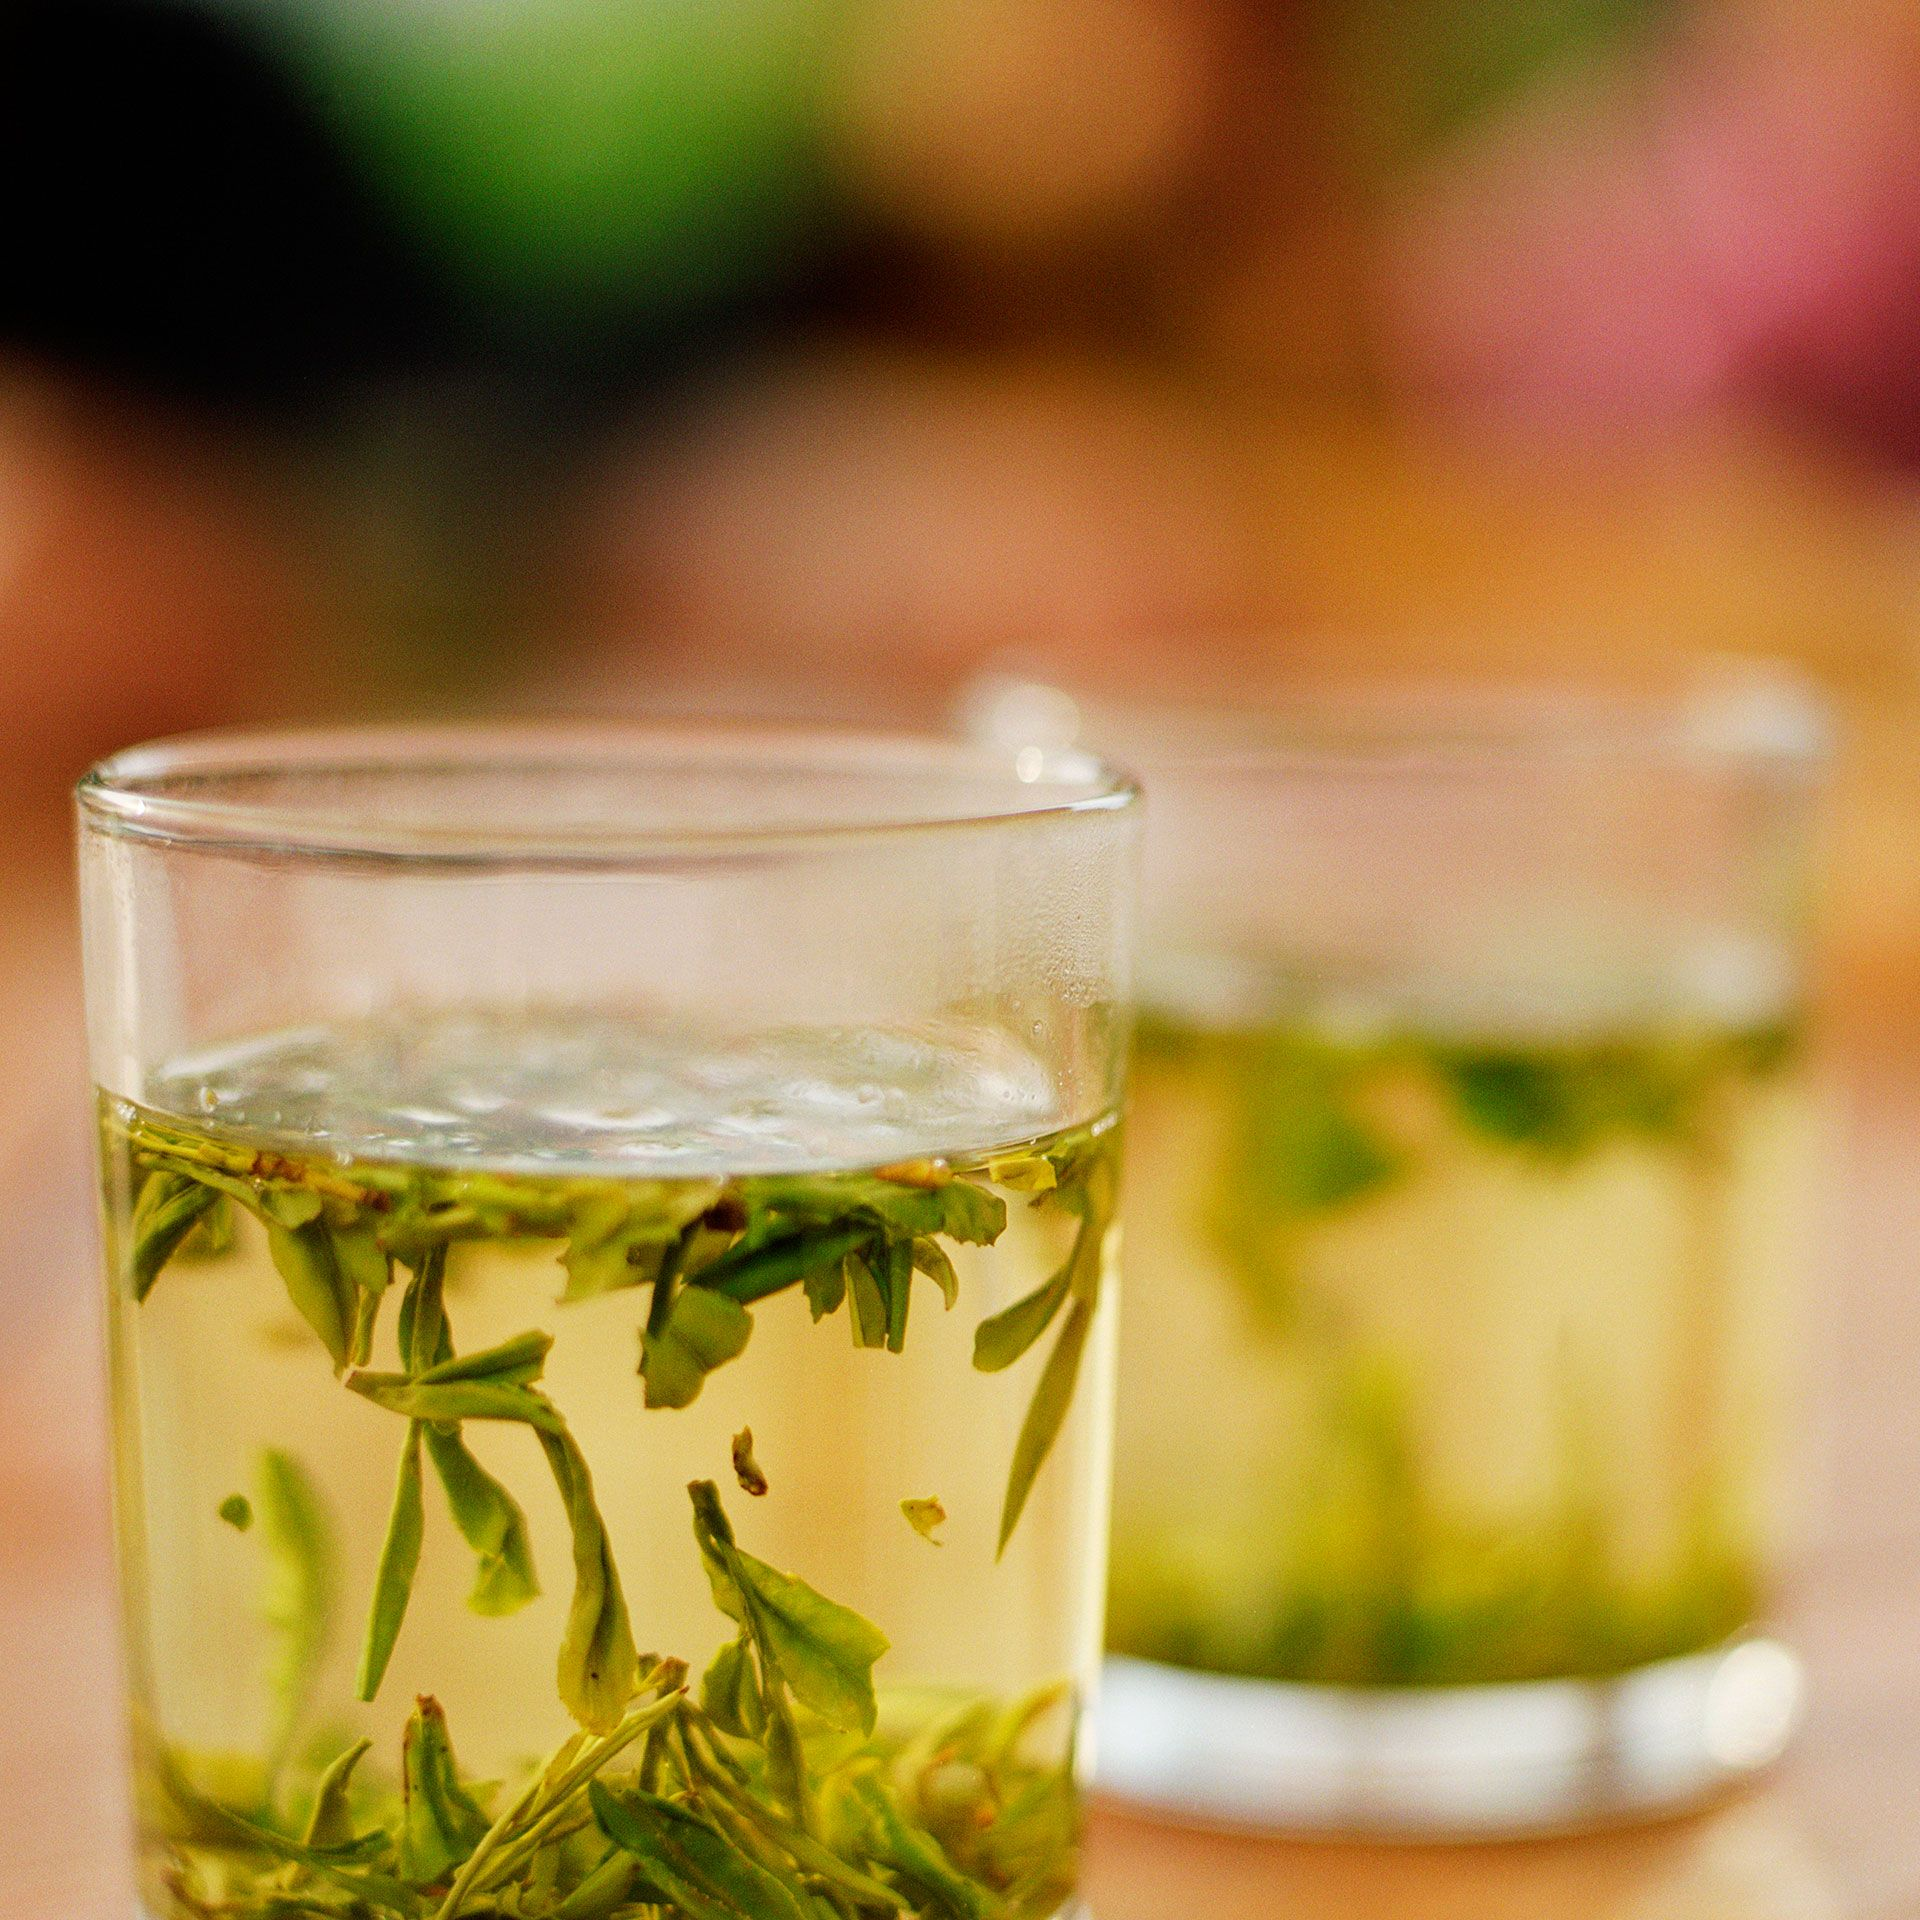 "<p>This antioxidant-rich tea has multiple health benefits, including boosting metabolism, says registered dietitian nutritonist <a href=""jackienewgent.com"">Jackie Newgent</a>, author of <em>The With or Without Meat Cookbook</em>. &ldquo&#x3B;It&rsquo&#x3B;s because green tea contains plant-based compounds called catechins.&rdquo&#x3B; Not only have these compounds <a href=""http://www.ncbi.nlm.nih.gov/pubmed/21115335"">been found</a> to reduce body weight and fat, but the caffeine in green tea also acts as a stimulant that can increase the amount of energy your body uses. And then there&rsquo&#x3B;s the H20. &ldquo&#x3B;<a href=""http://www.ncbi.nlm.nih.gov/pubmed/20796216"">Drinking water</a> may promote thermogenesis&mdash&#x3B;the production of heat caused by the metabolizing of food&mdash&#x3B;and play a role in reducing calorie intake,&rdquo&#x3B; adds Newgent.&nbsp&#x3B;</p>"